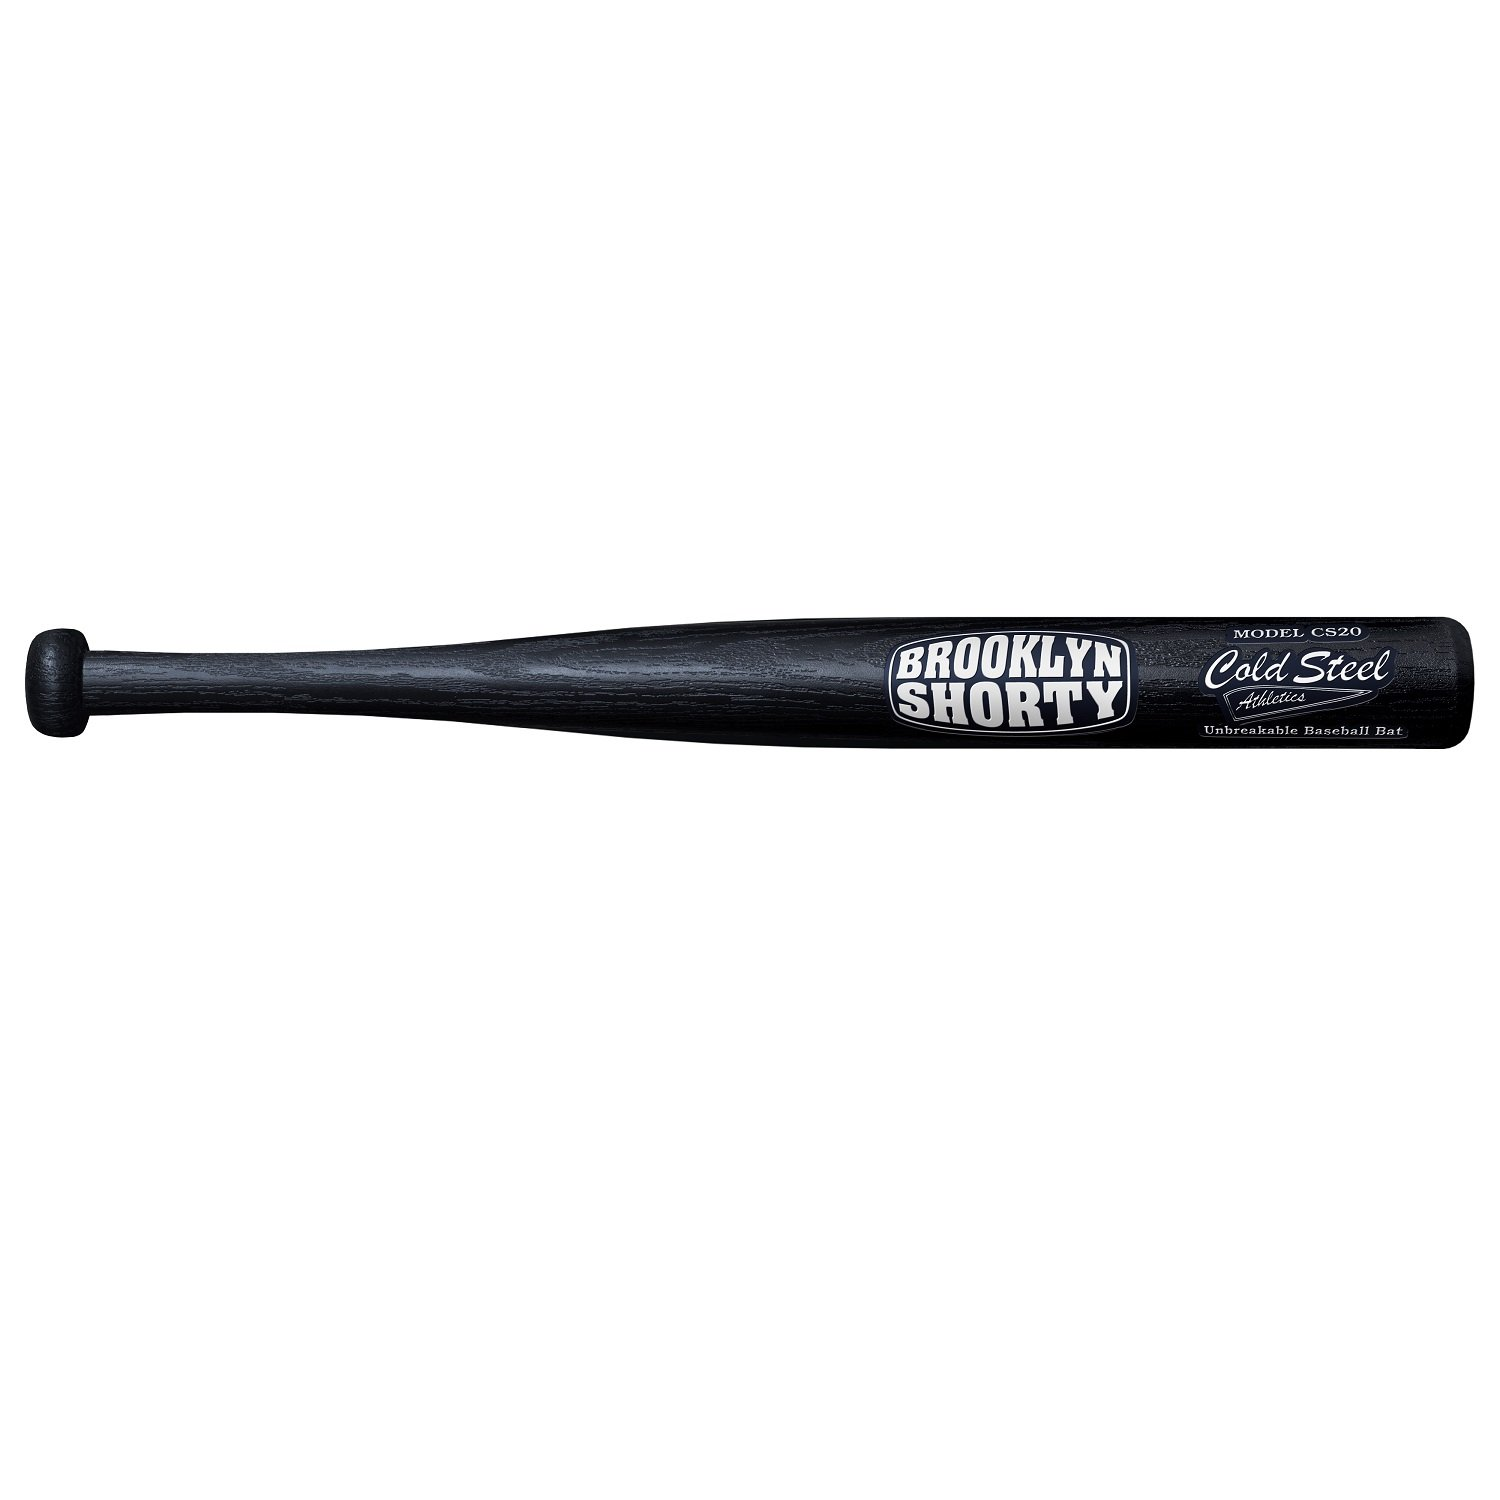 amazon com cold steel brooklyn shorty mini bat black sports